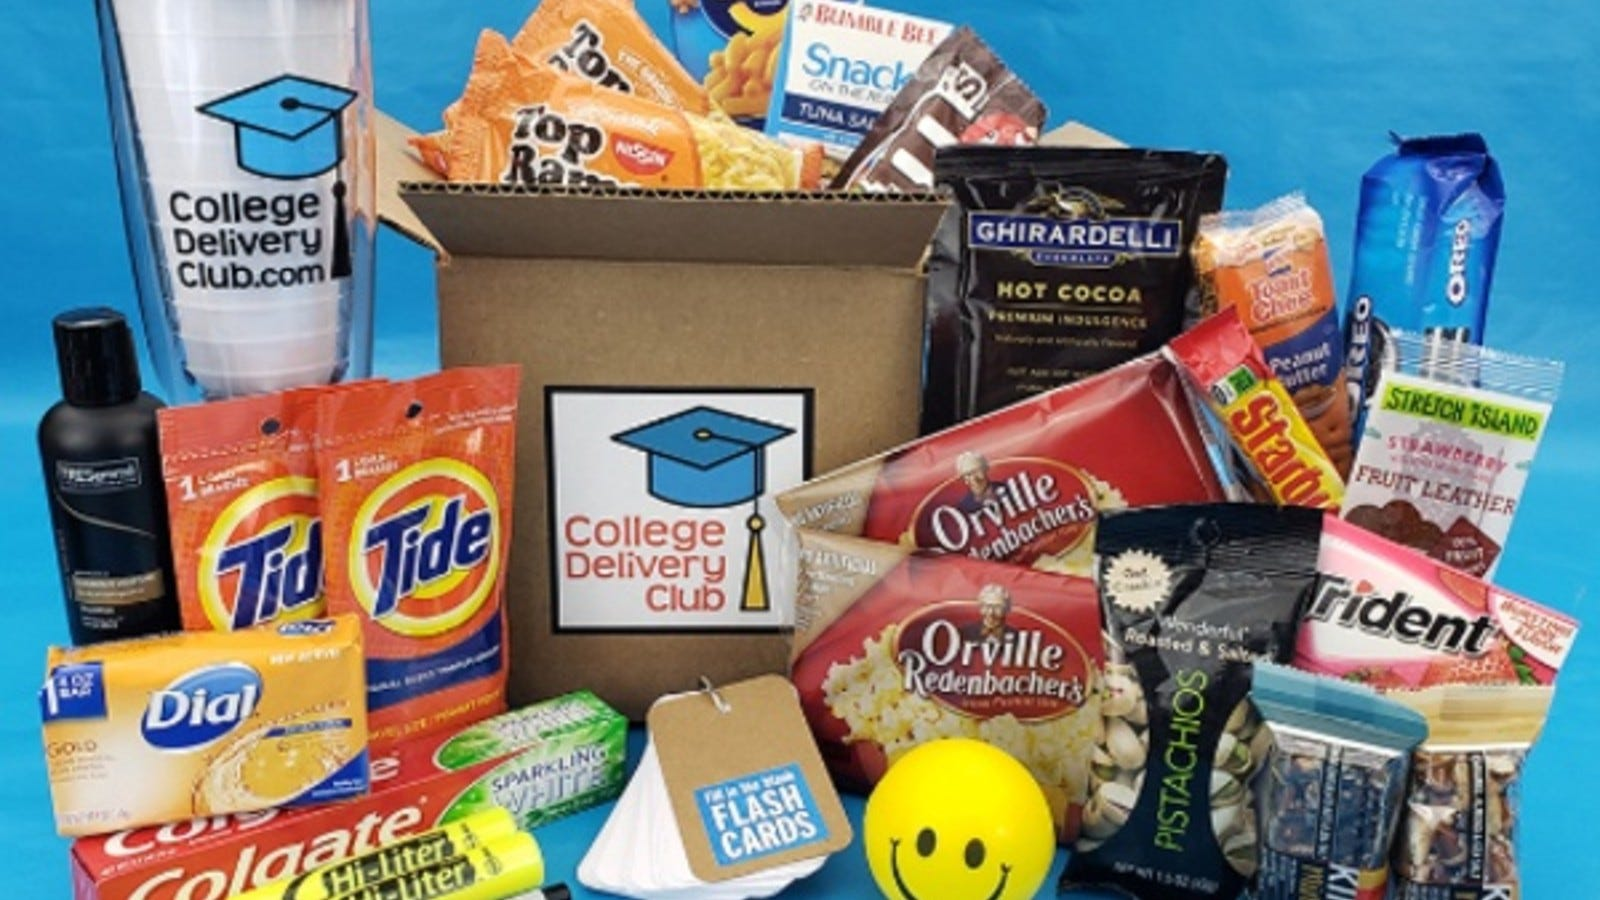 A College Delivery Club box surrounded by its contents.